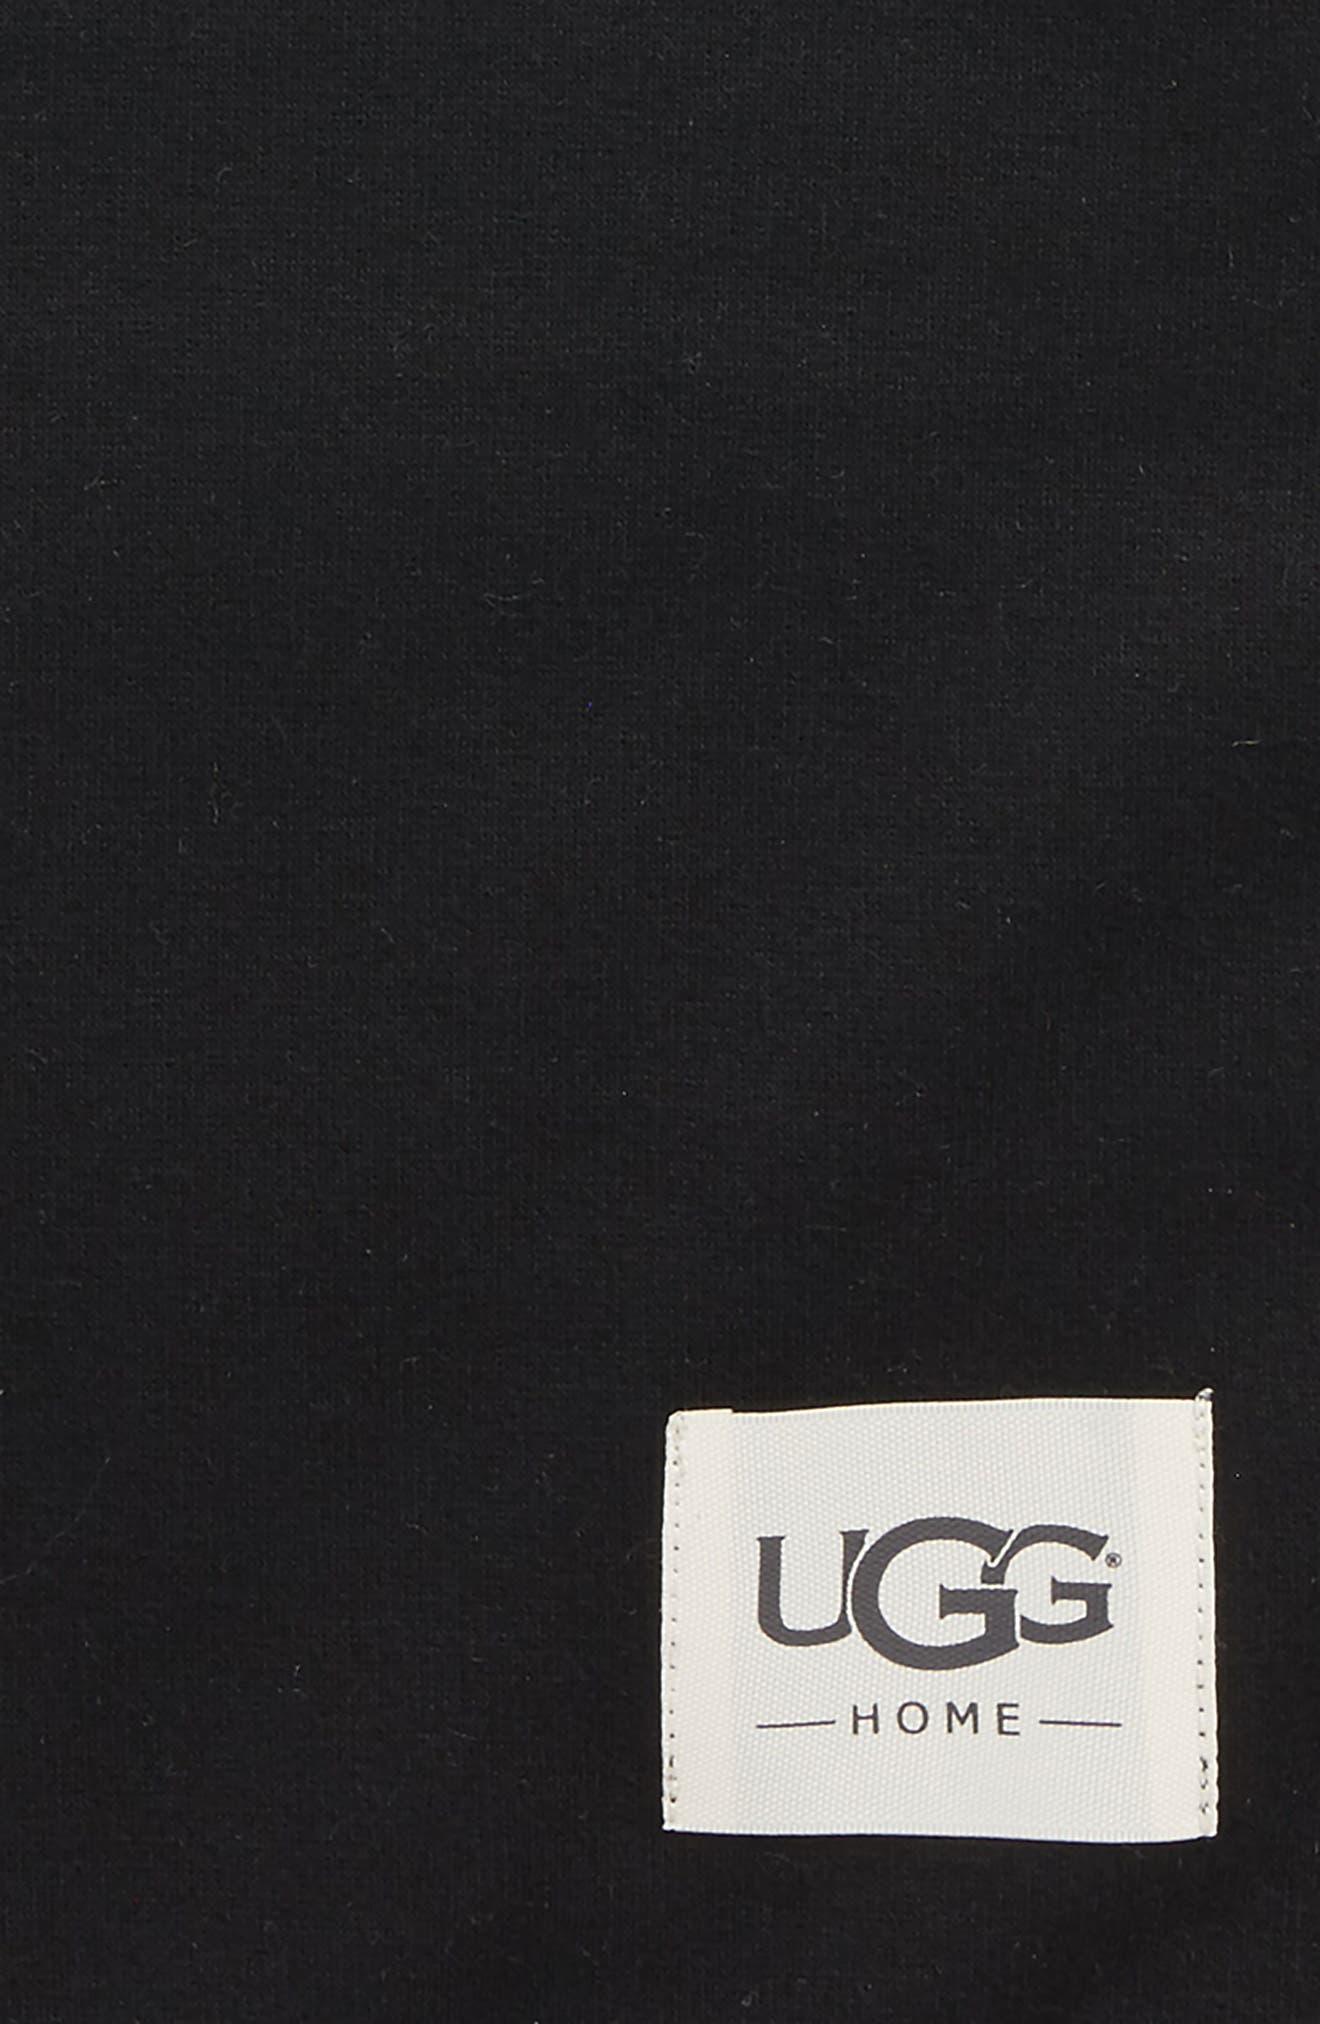 UGG<SUP>®</SUP>, Duffield Eye Mask, Pouch & Blanket Travel Set, Alternate thumbnail 2, color, 001